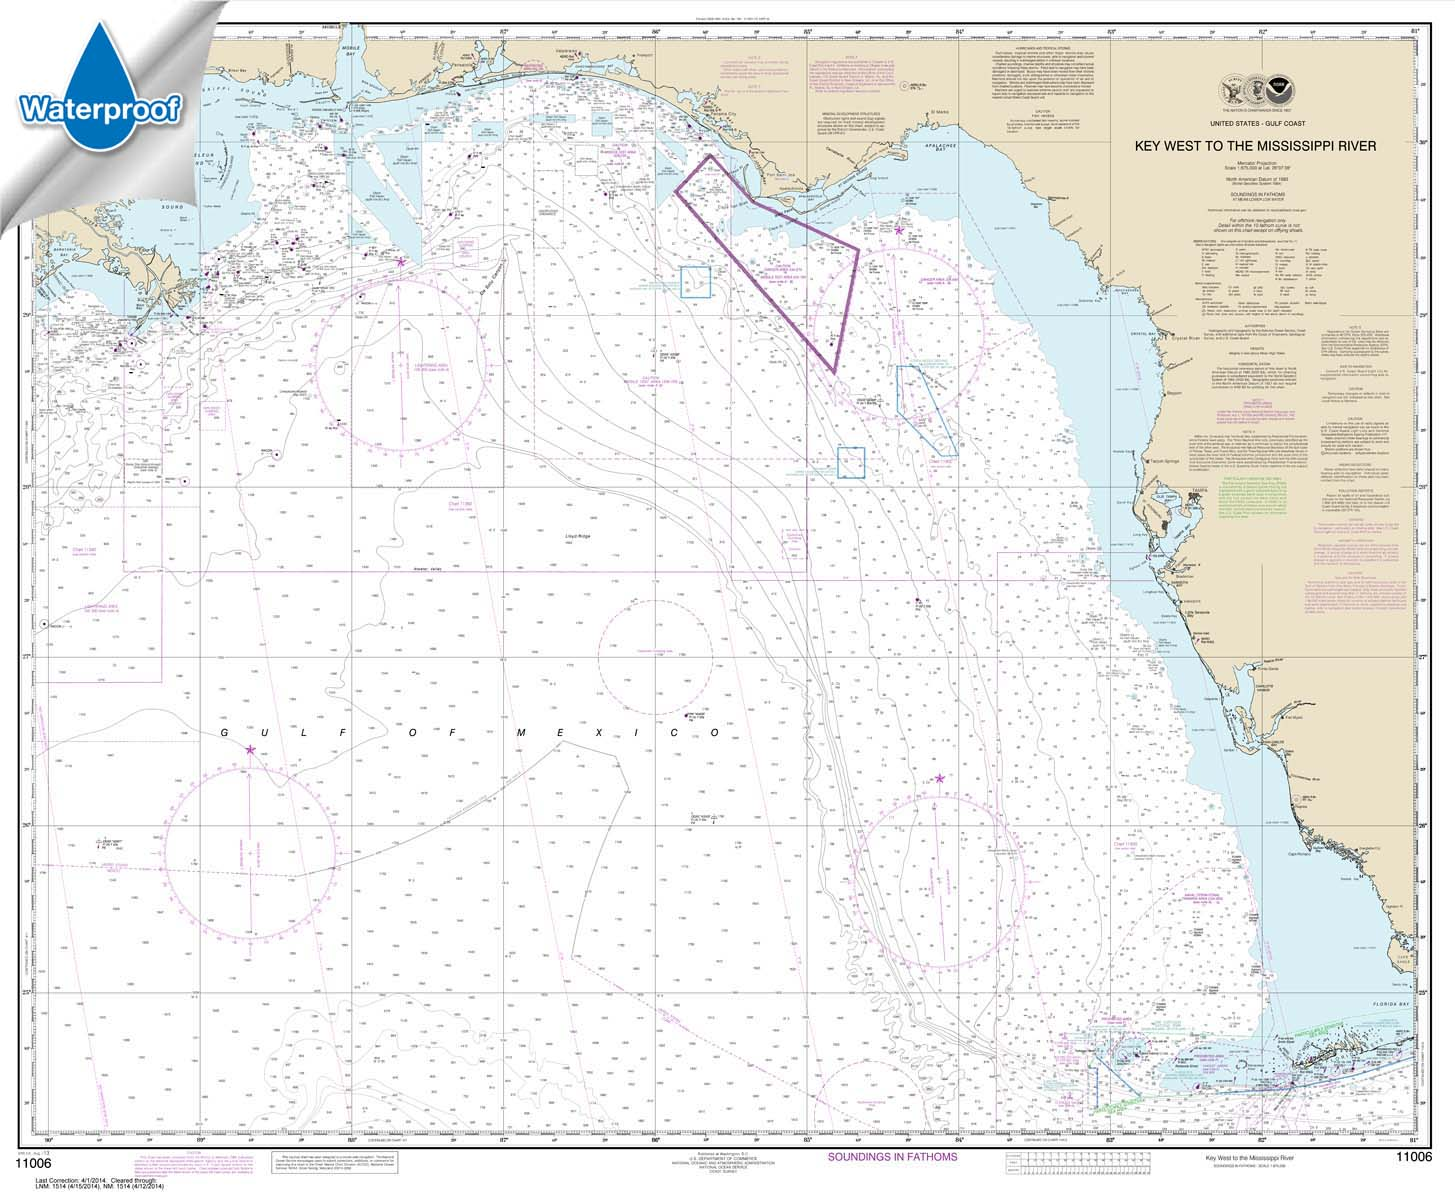 Waterproof NOAA Charts, Waterproof NOAA Chart 11006: Key West to Mississippi River